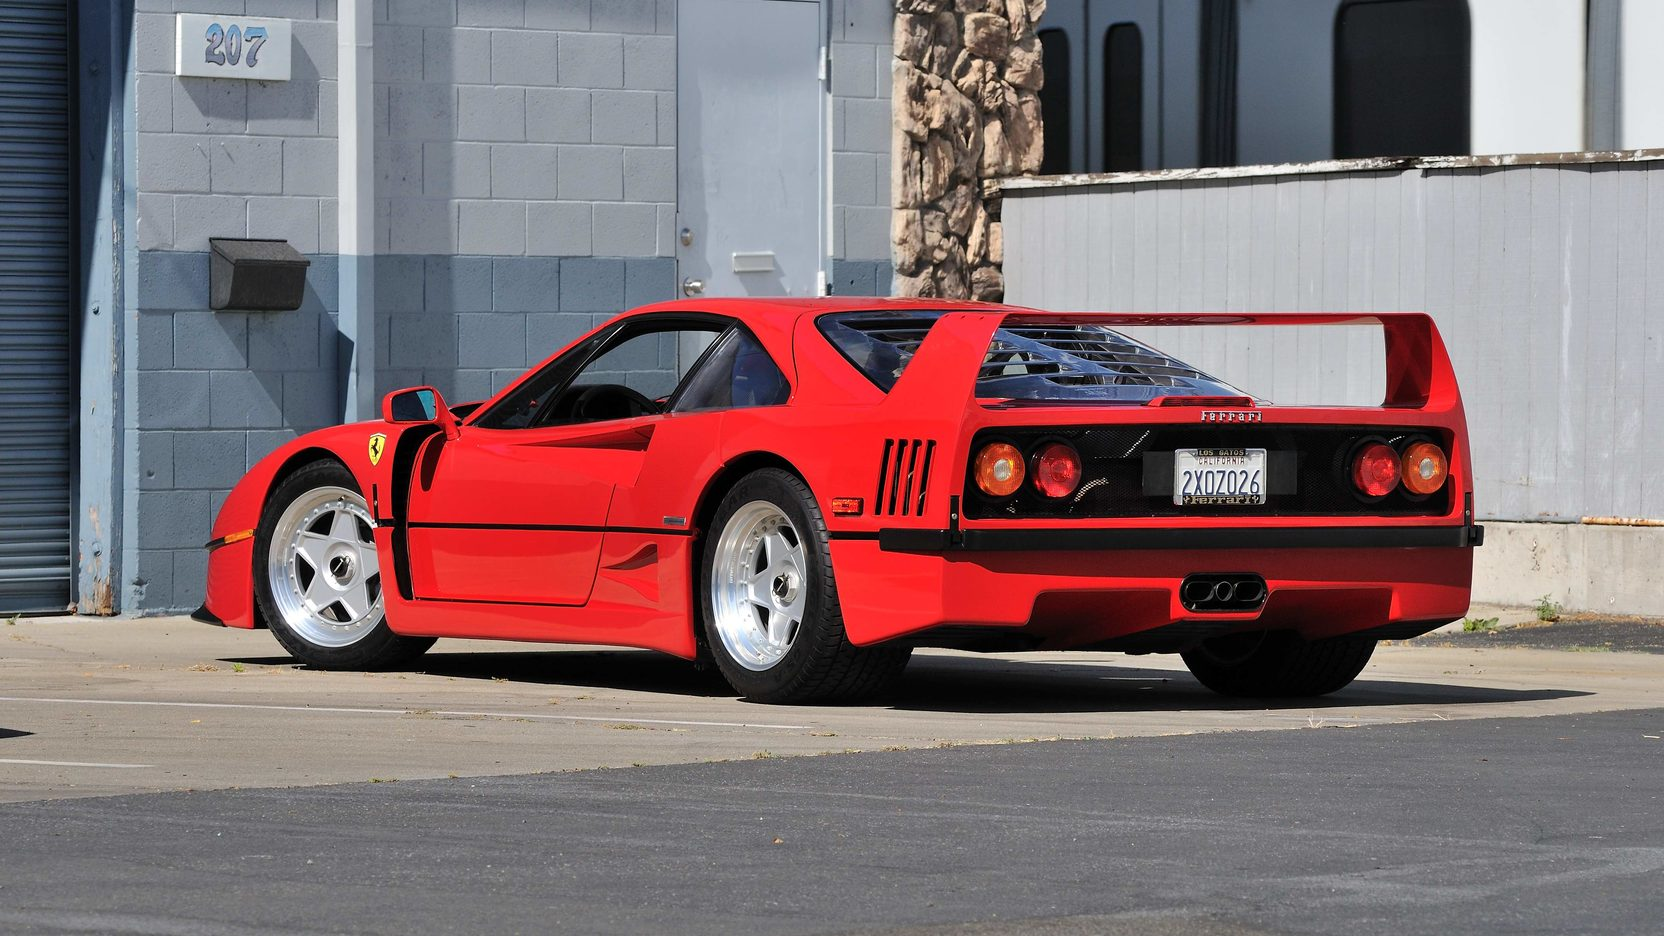 Red Ferrari F40 sitting in parking lot behind building